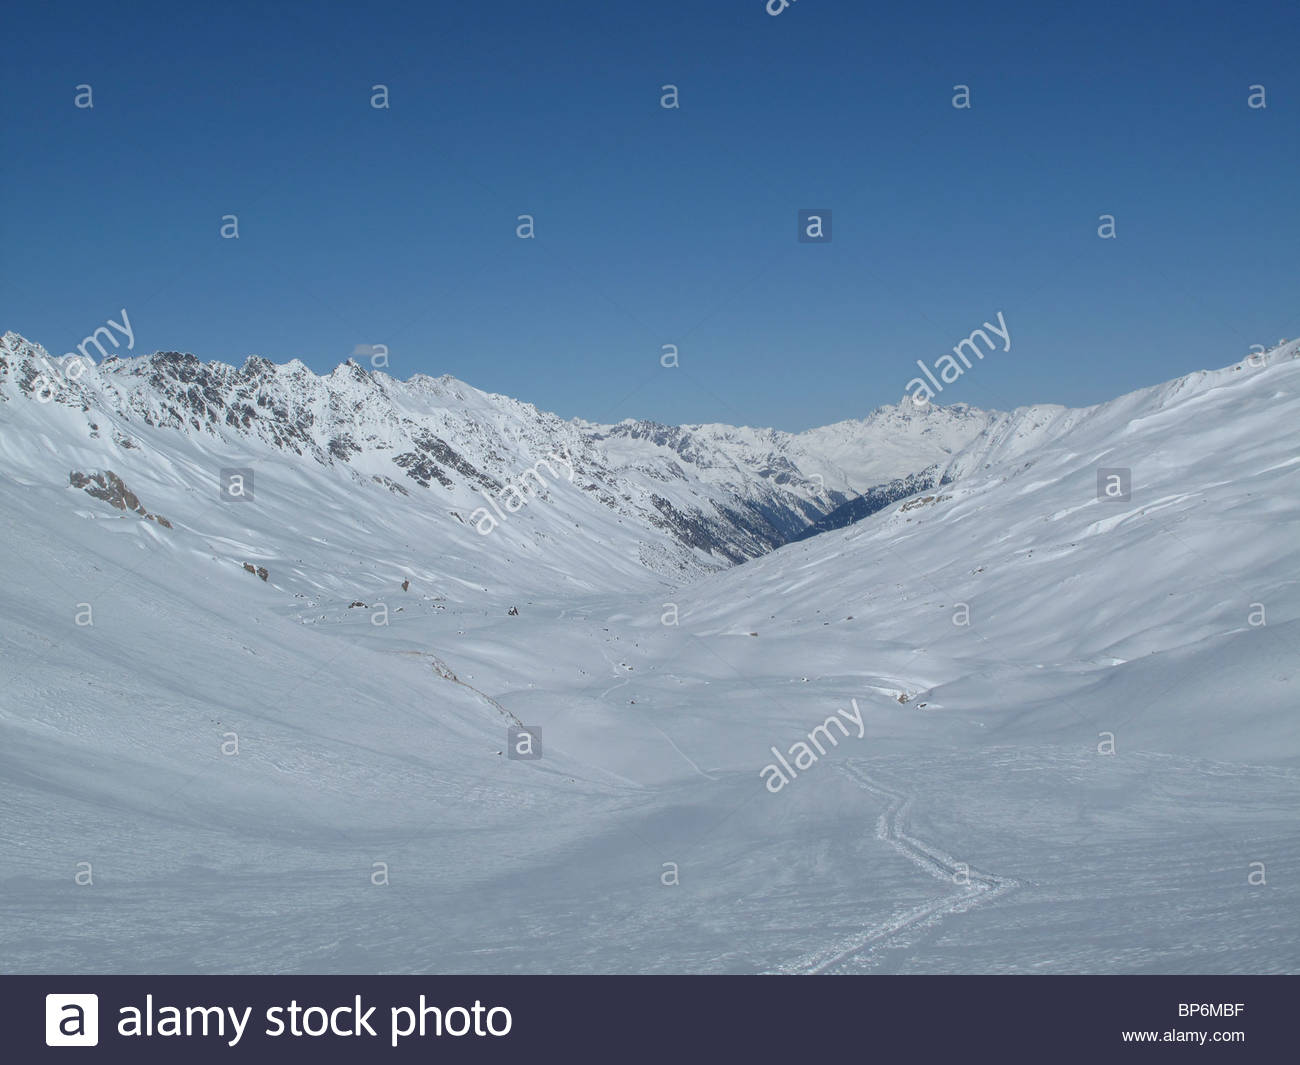 Snow-capped mountains in Fimbatal, the border between Switzerland and Austria, Ischgl - Stock Image